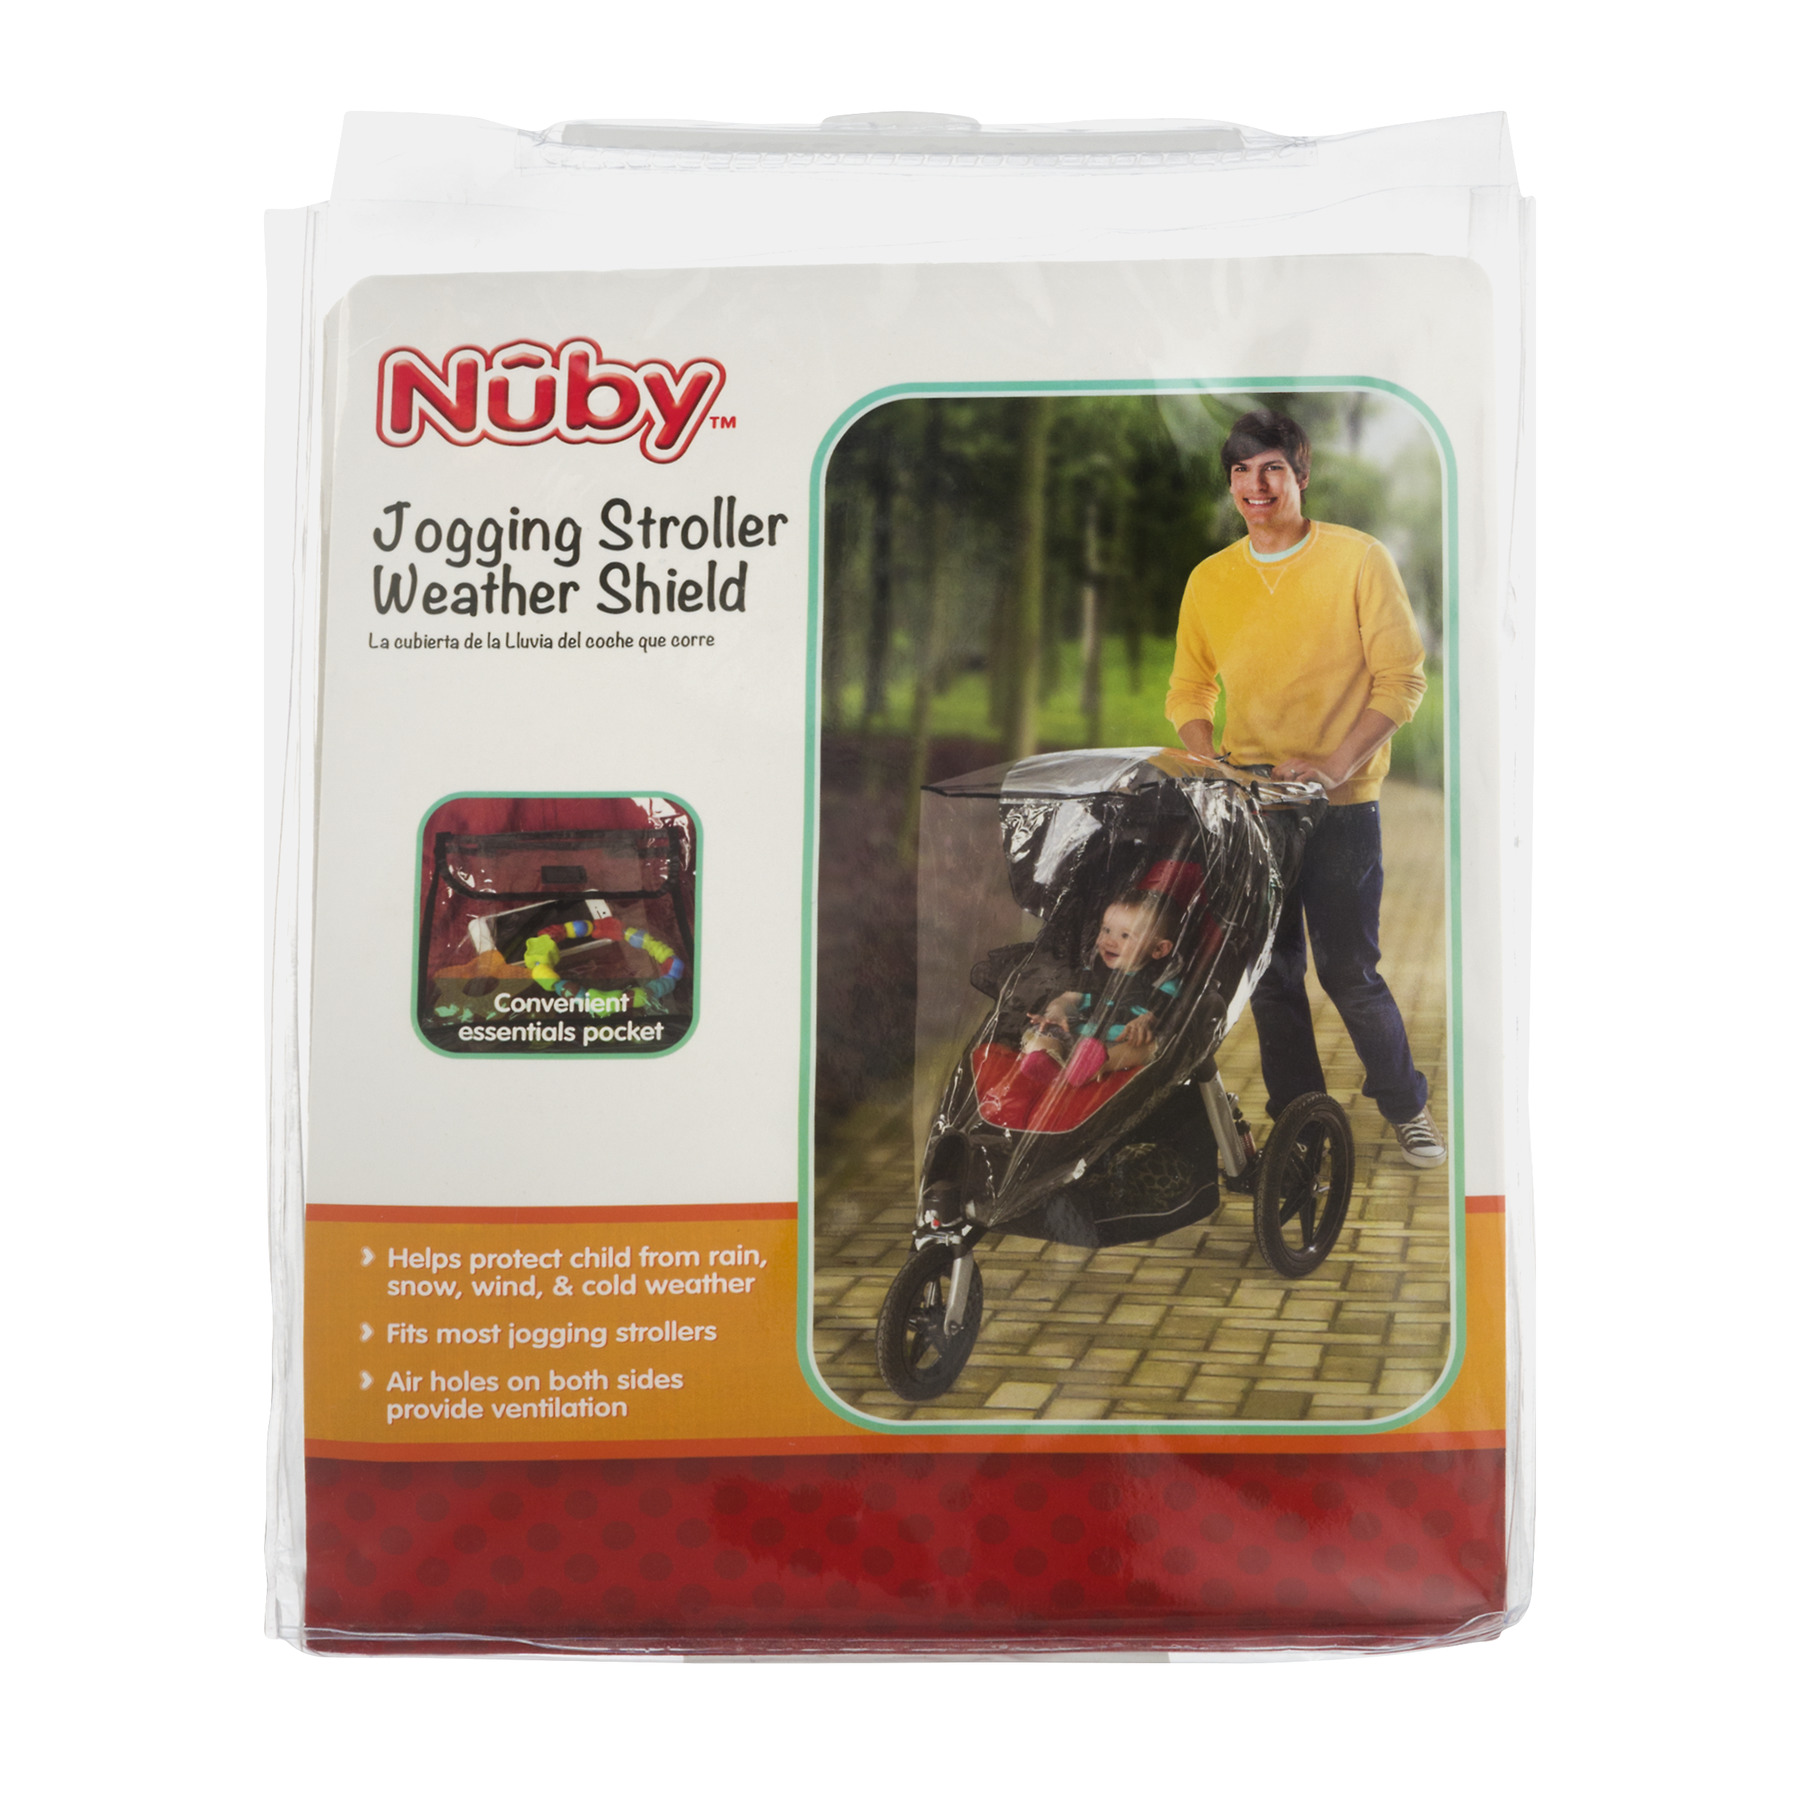 Nuby Jogging Stroller Weather Shield, 1.0 CT